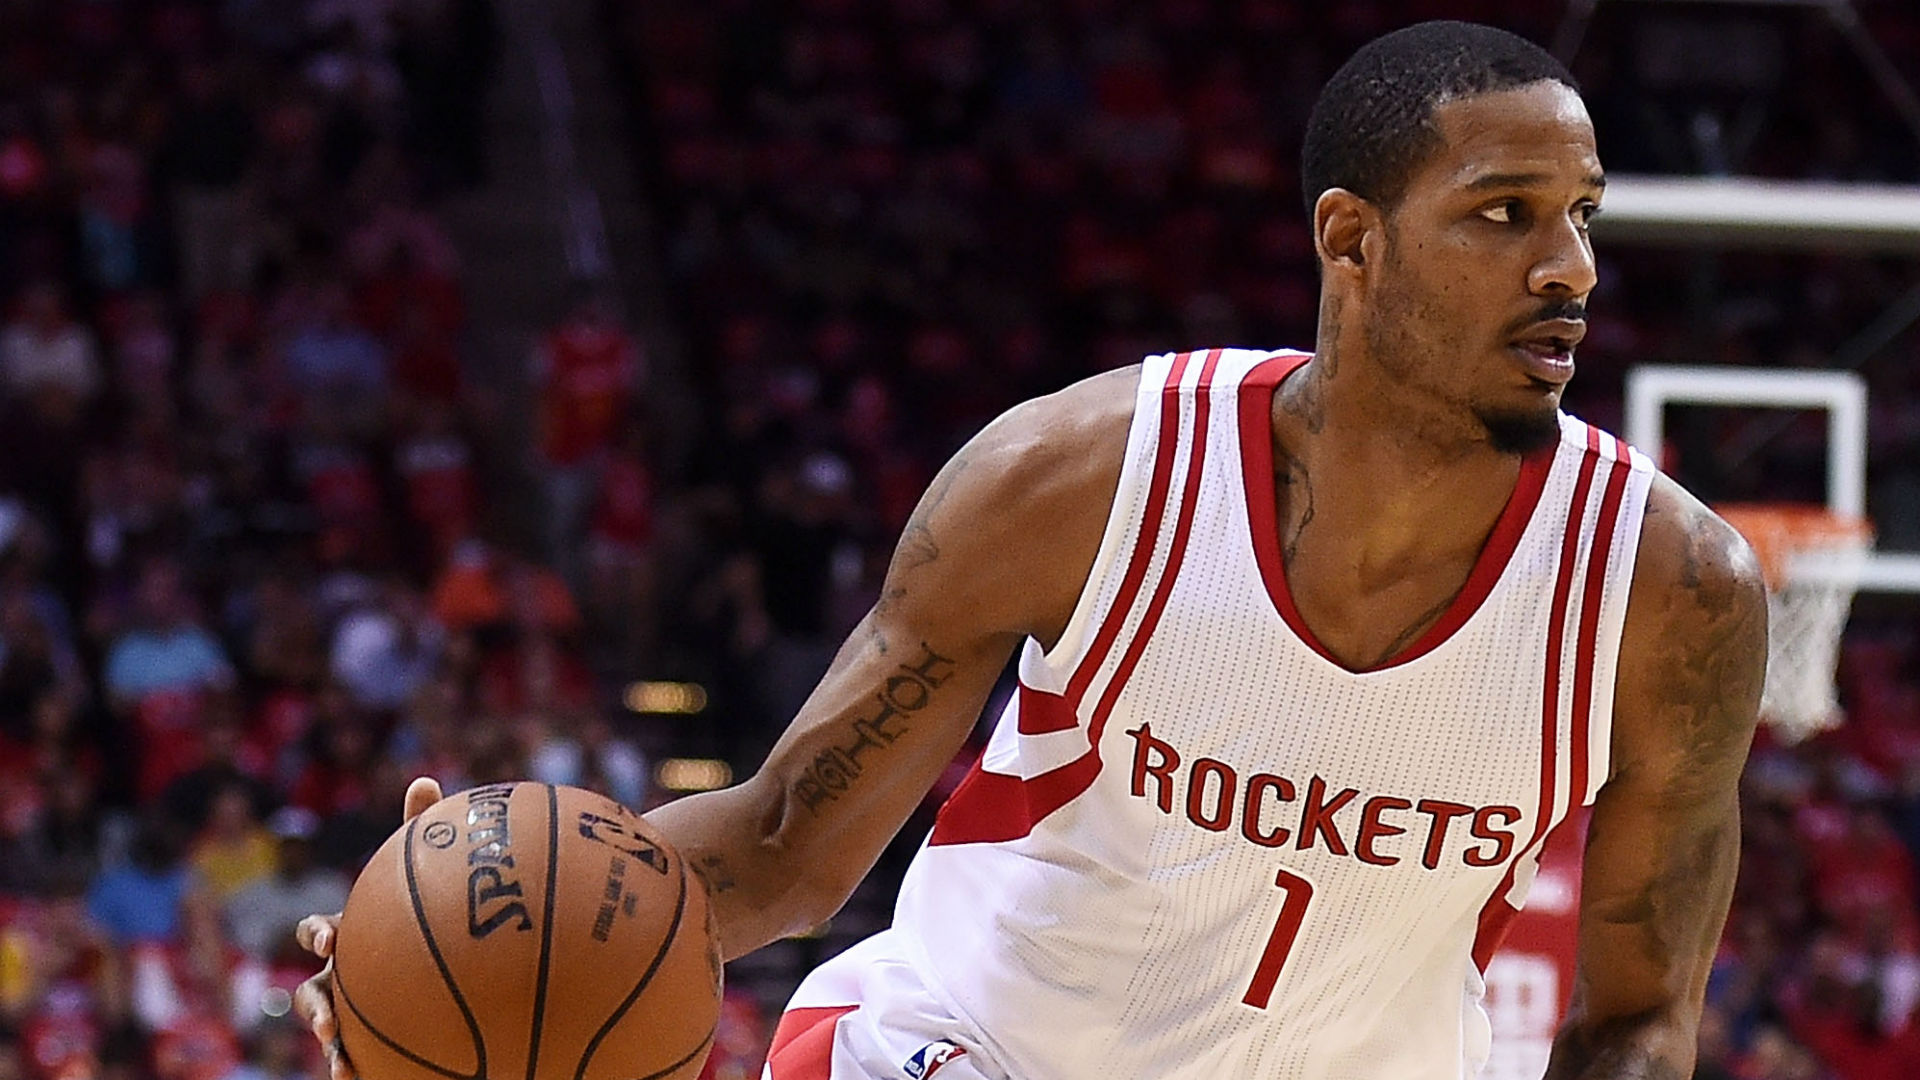 Trevor Ariza agrees to 1-year, $15M deal with Suns